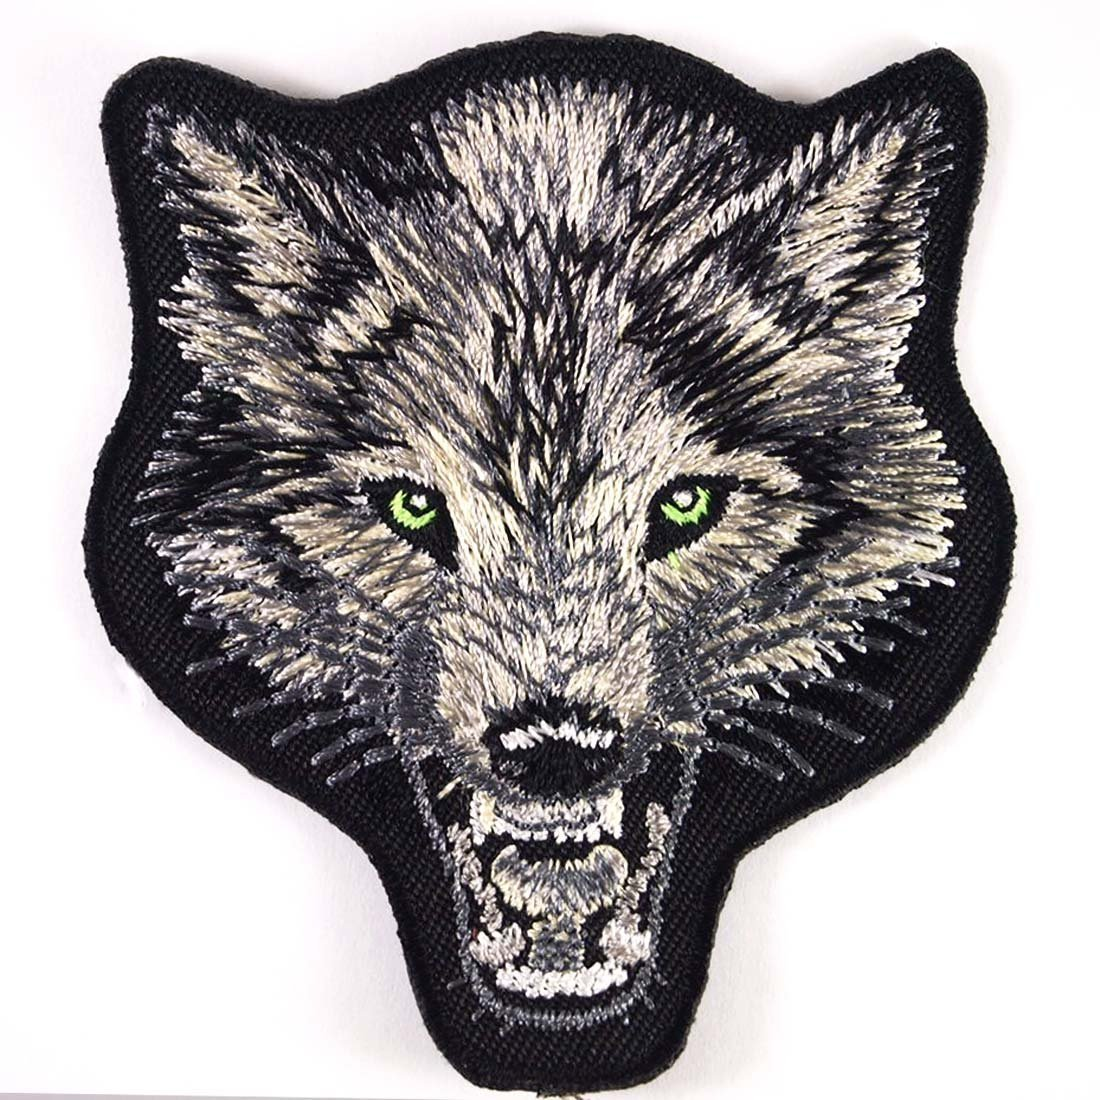 "Wolf Gray 3 1/4"" x 3 1/2"" logo Embroidered Iron On Applique Patch"